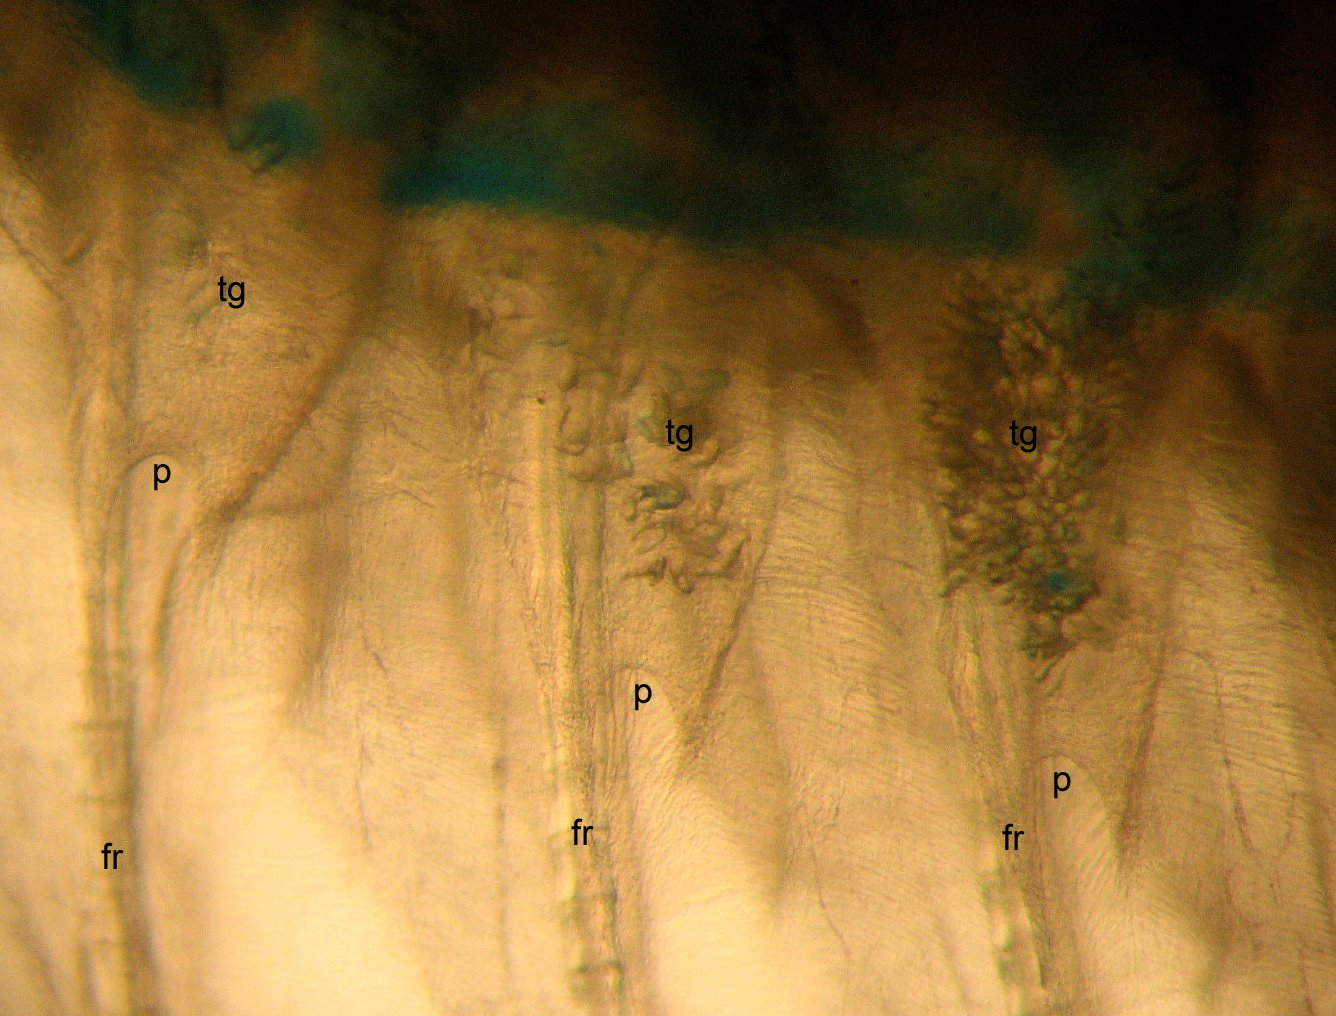 Toxin glands of a Southern Peacock Sole